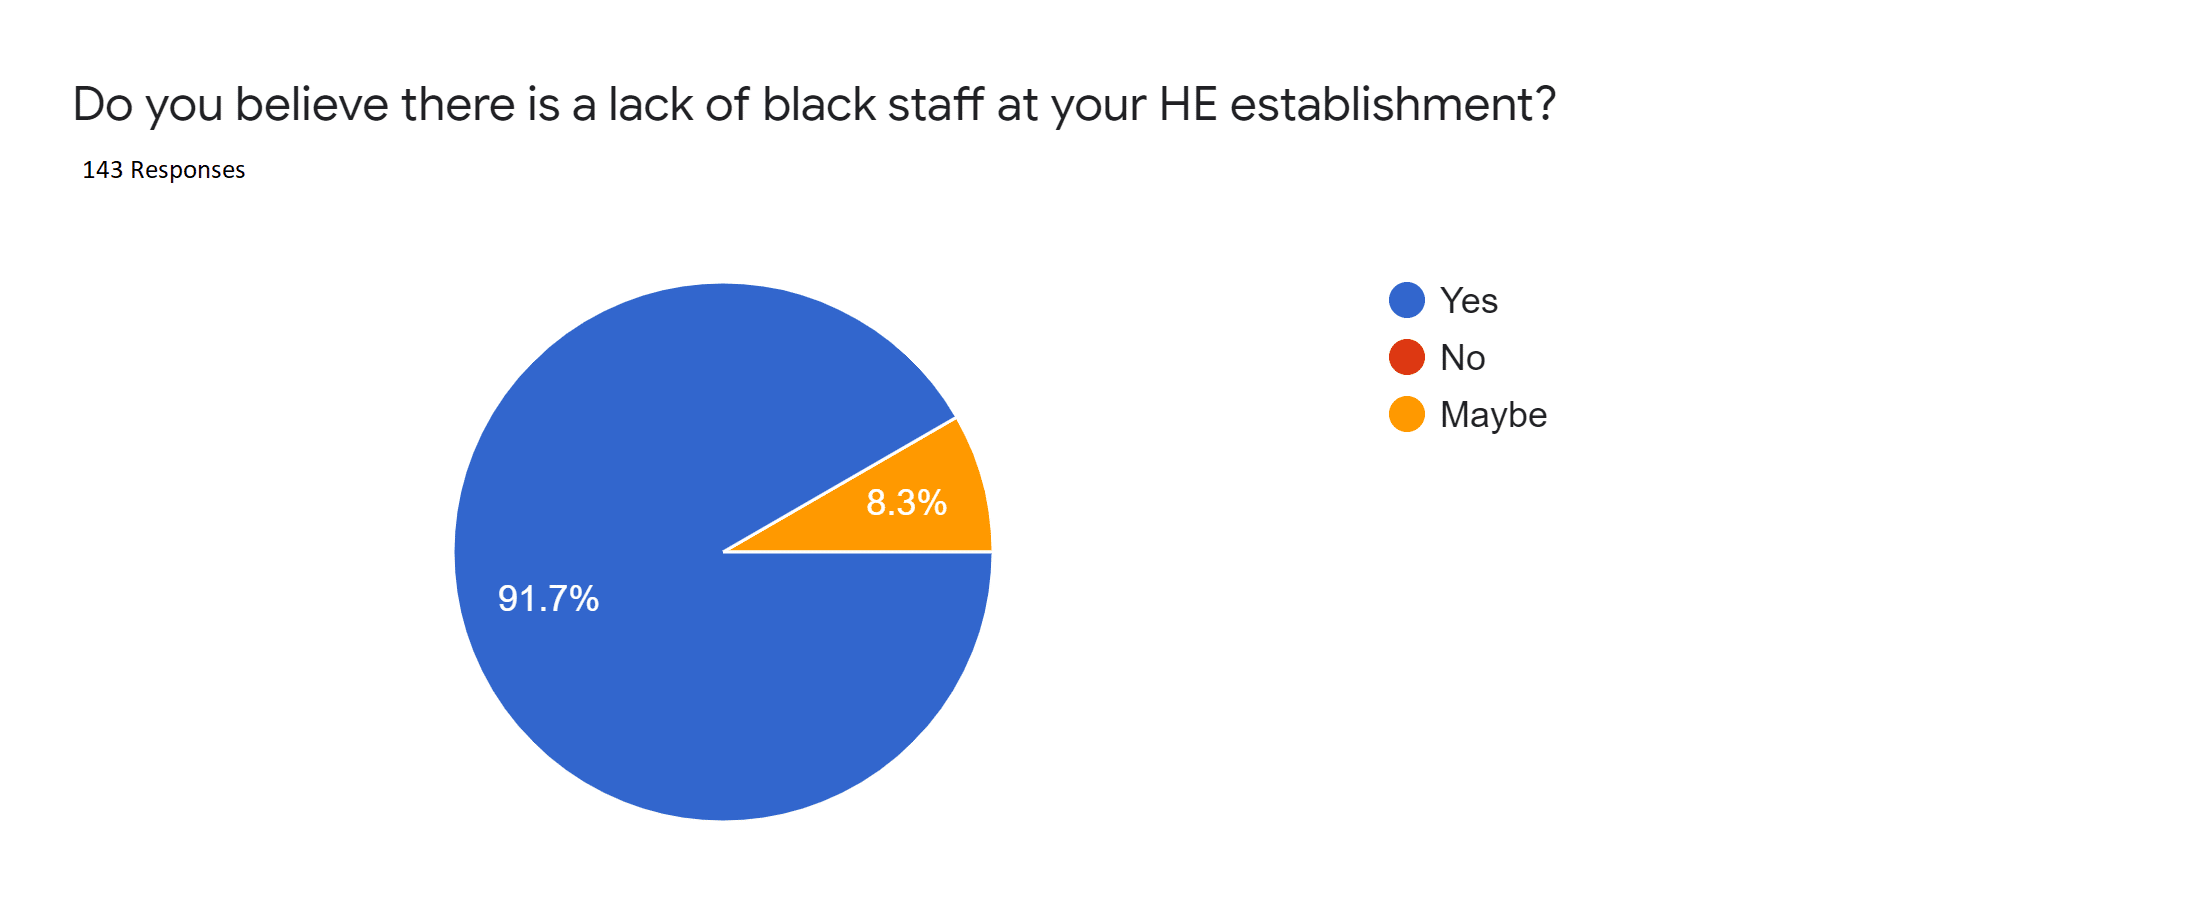 Black and Minority Ethnic Staff in Higher Education – How HE Establishments Should Continue to Address the Imbalance Careers in HE